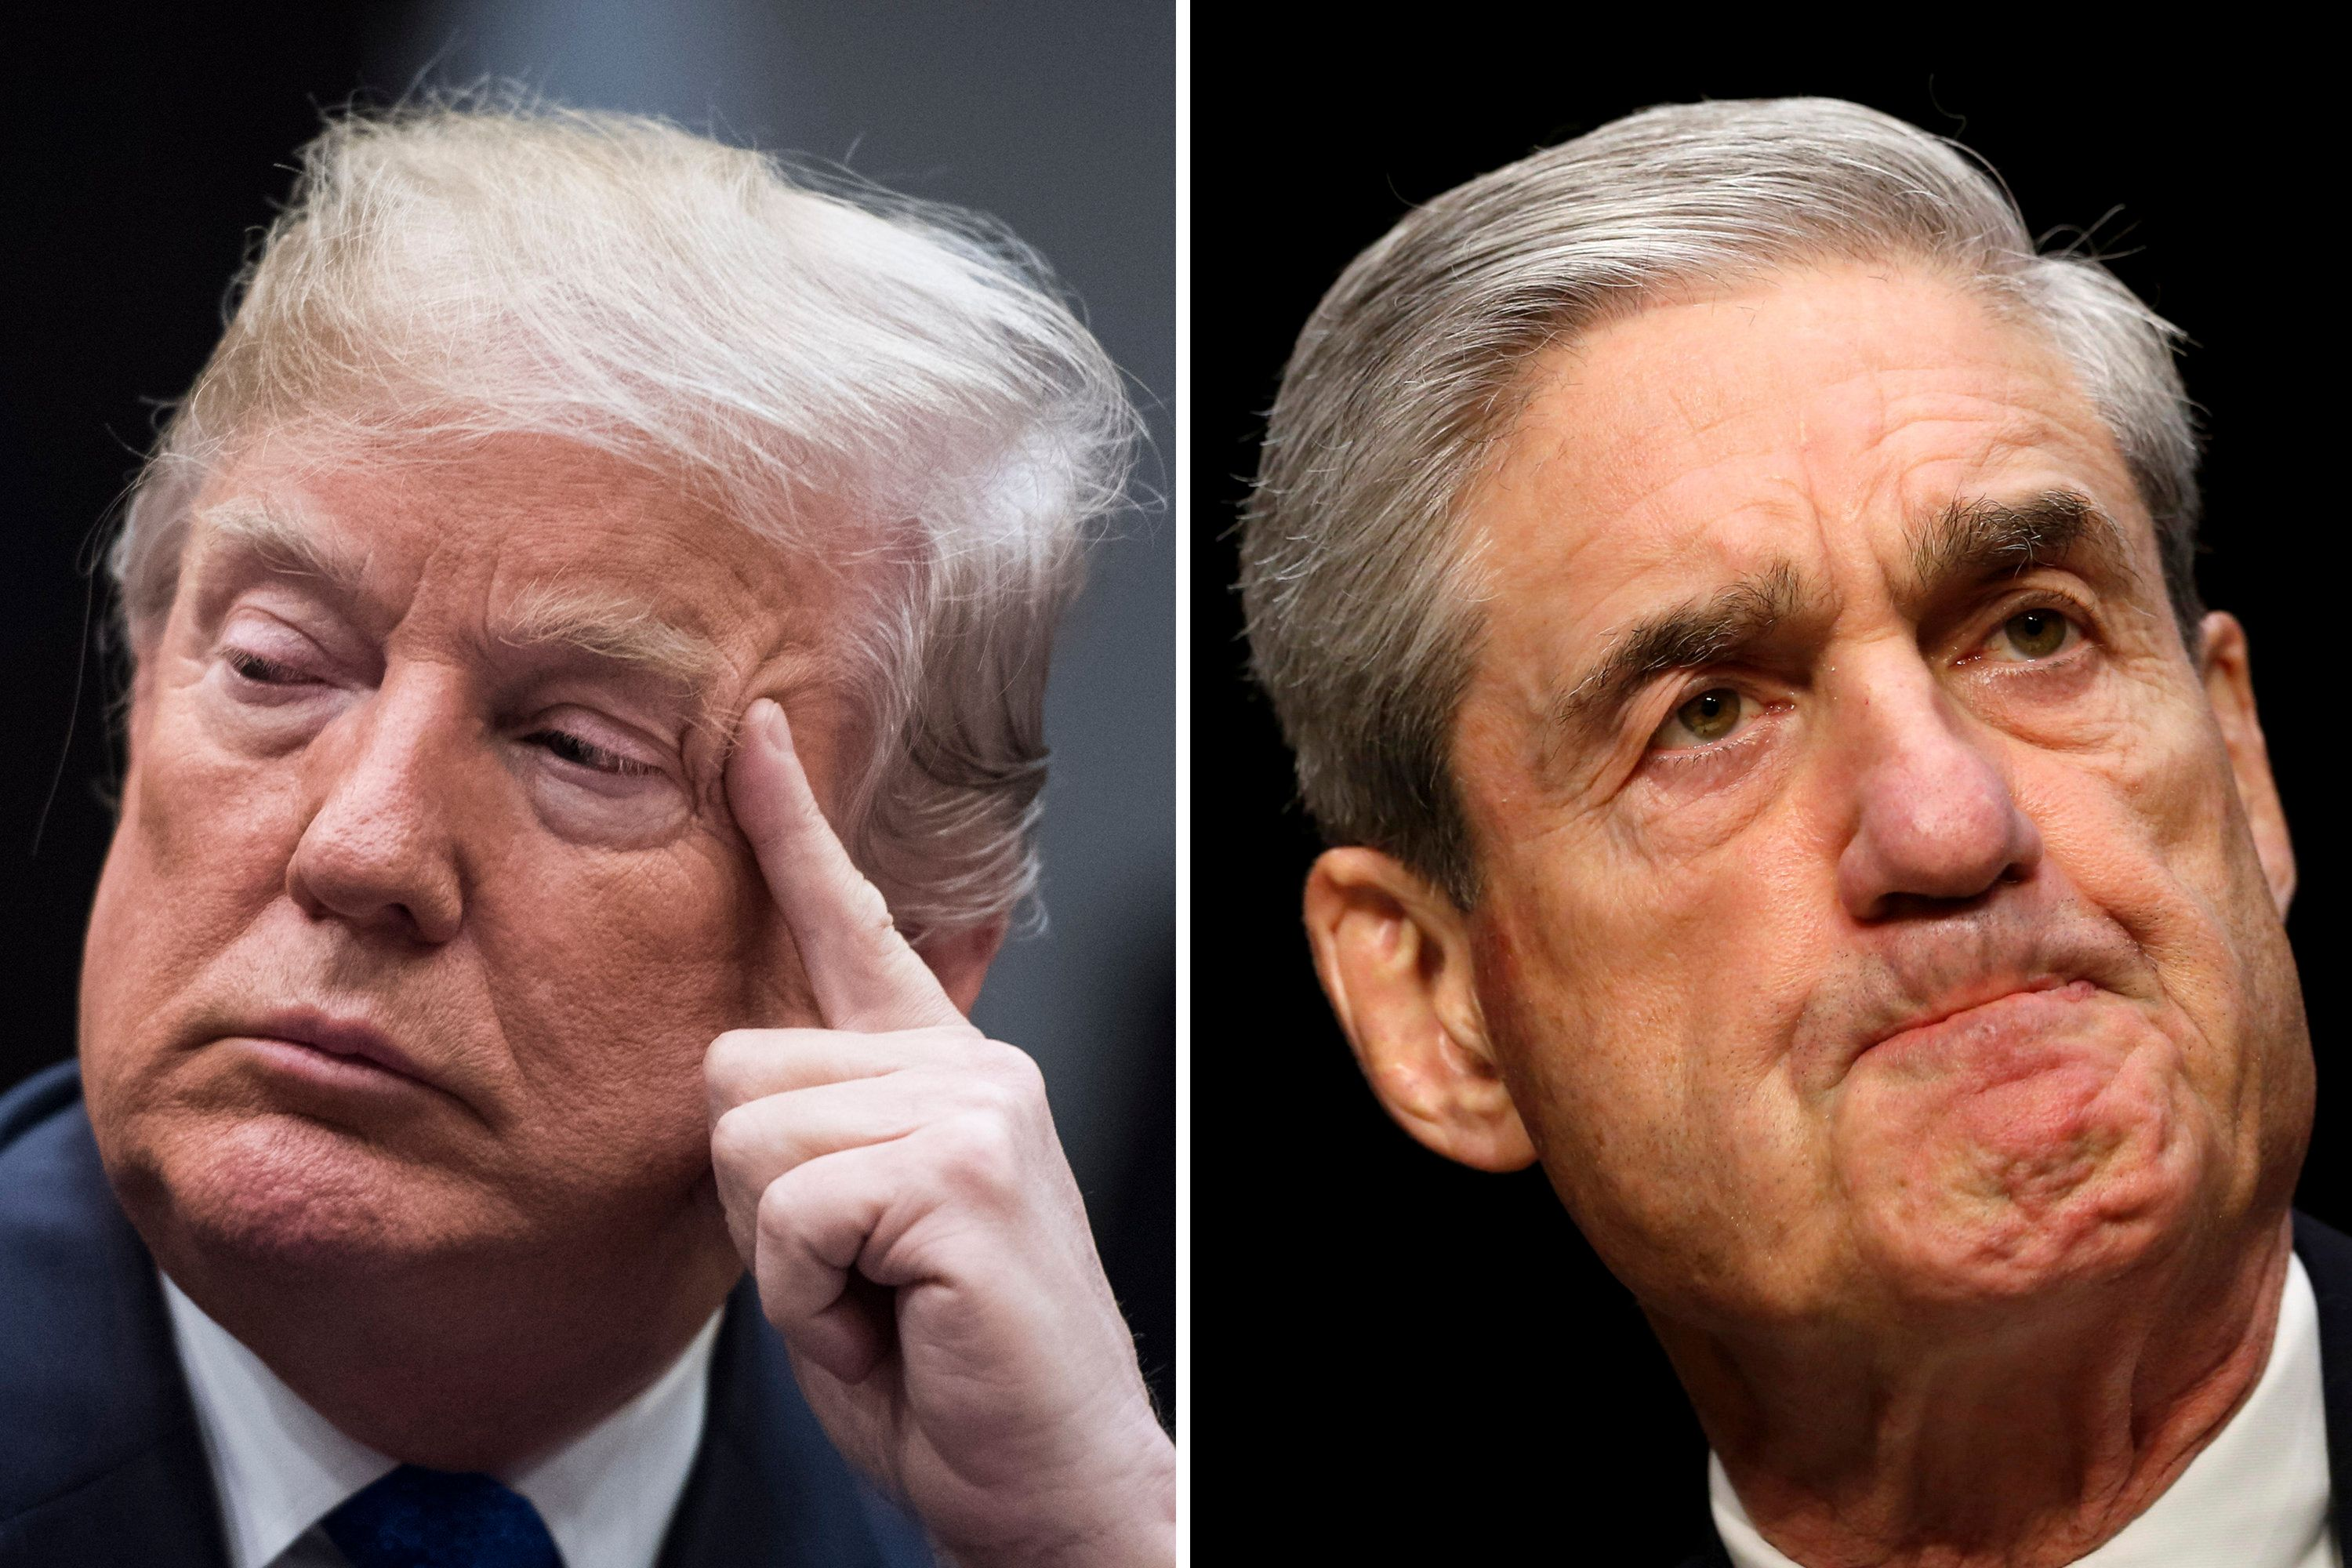 Left, President Donald Trump at the White House on Jan. 04, 2018. Robert Mueller on Capitol Hill in 2013. (Jabin Botsford/The Washington Post via Getty Images; Kevin Lamarque/Reuters)